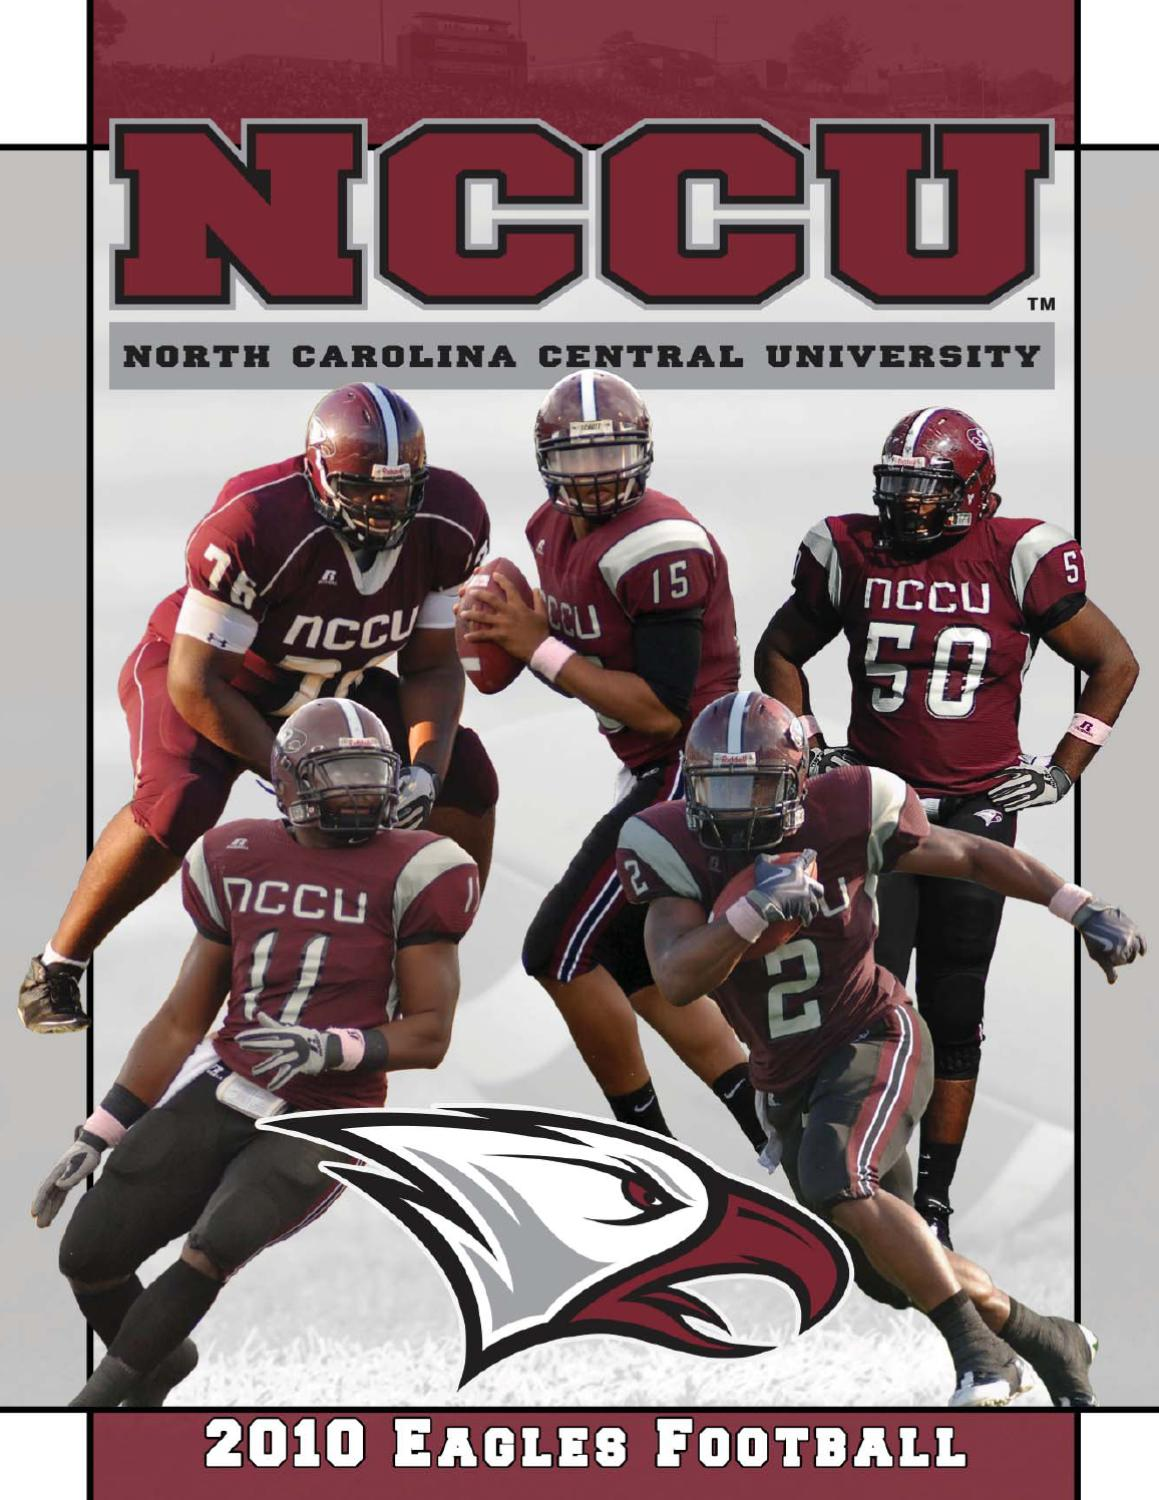 42d446833 2010 NCCU Football Information Guide by North Carolina Central University  Department of Athletics - issuu